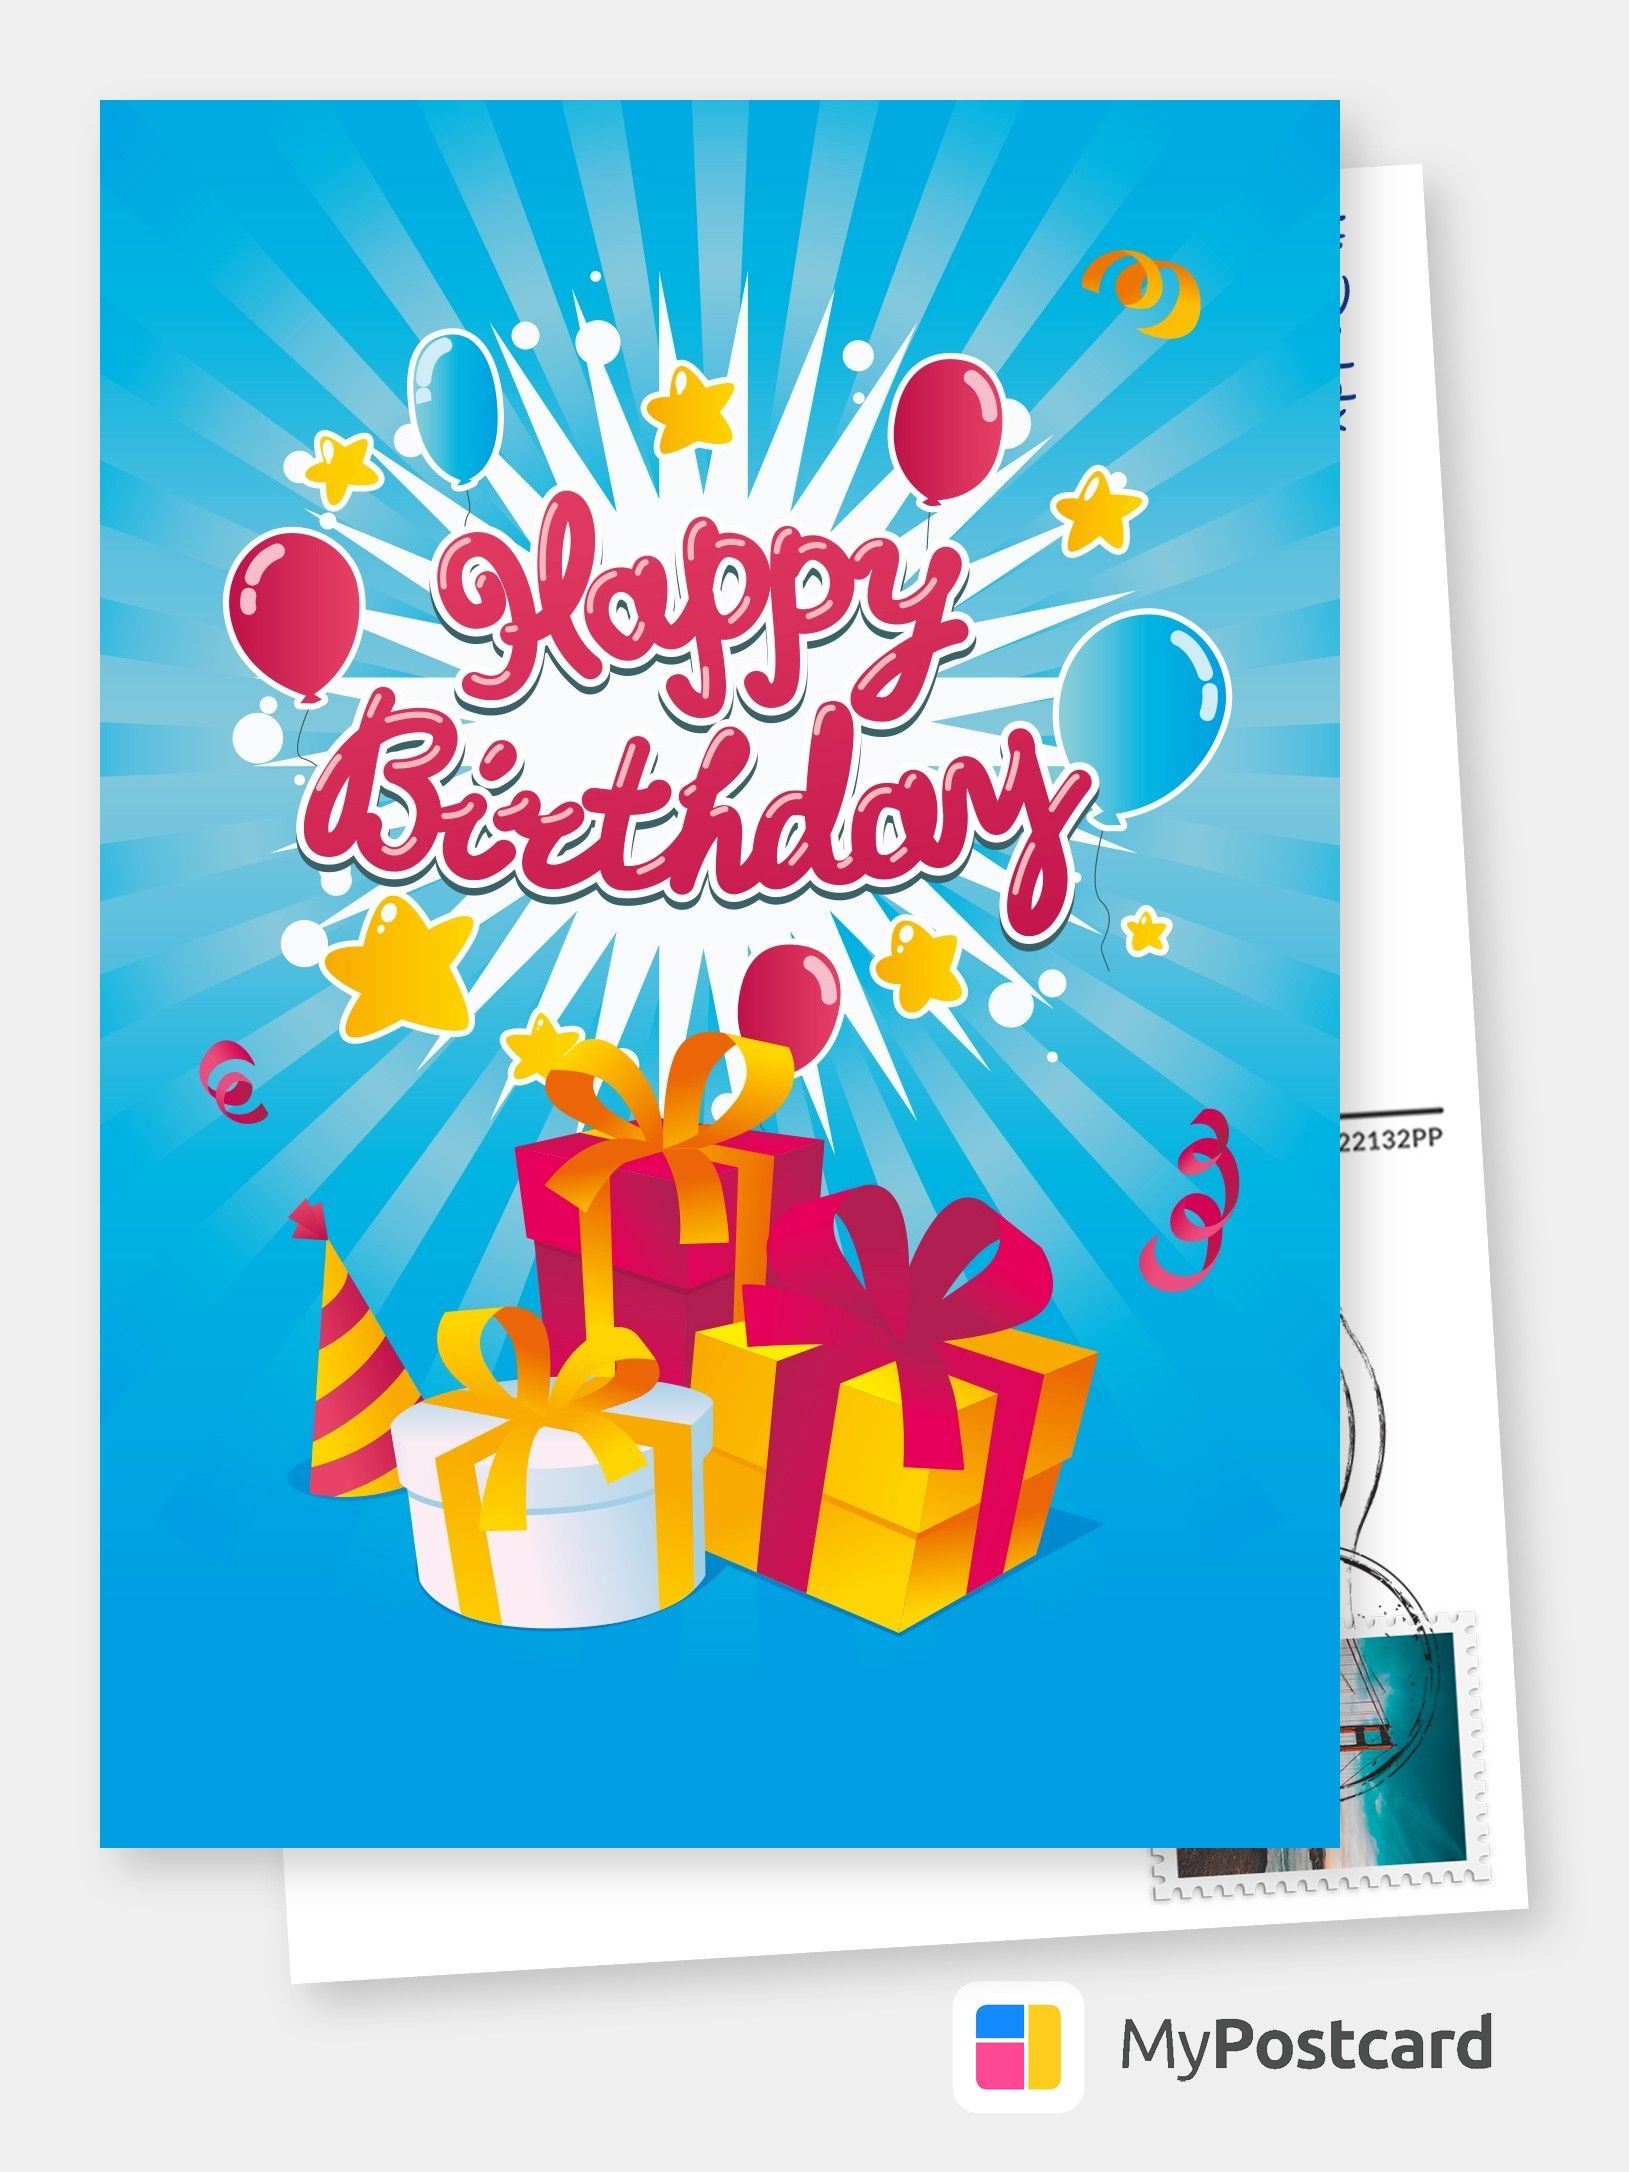 Create Your Own Happy Birthday Cards Free Printable Templates Printed Mailed For You Photo Cards Photo Postcards Greeting Cards Online Sevice Postc Happy Birthday Greetings Friends